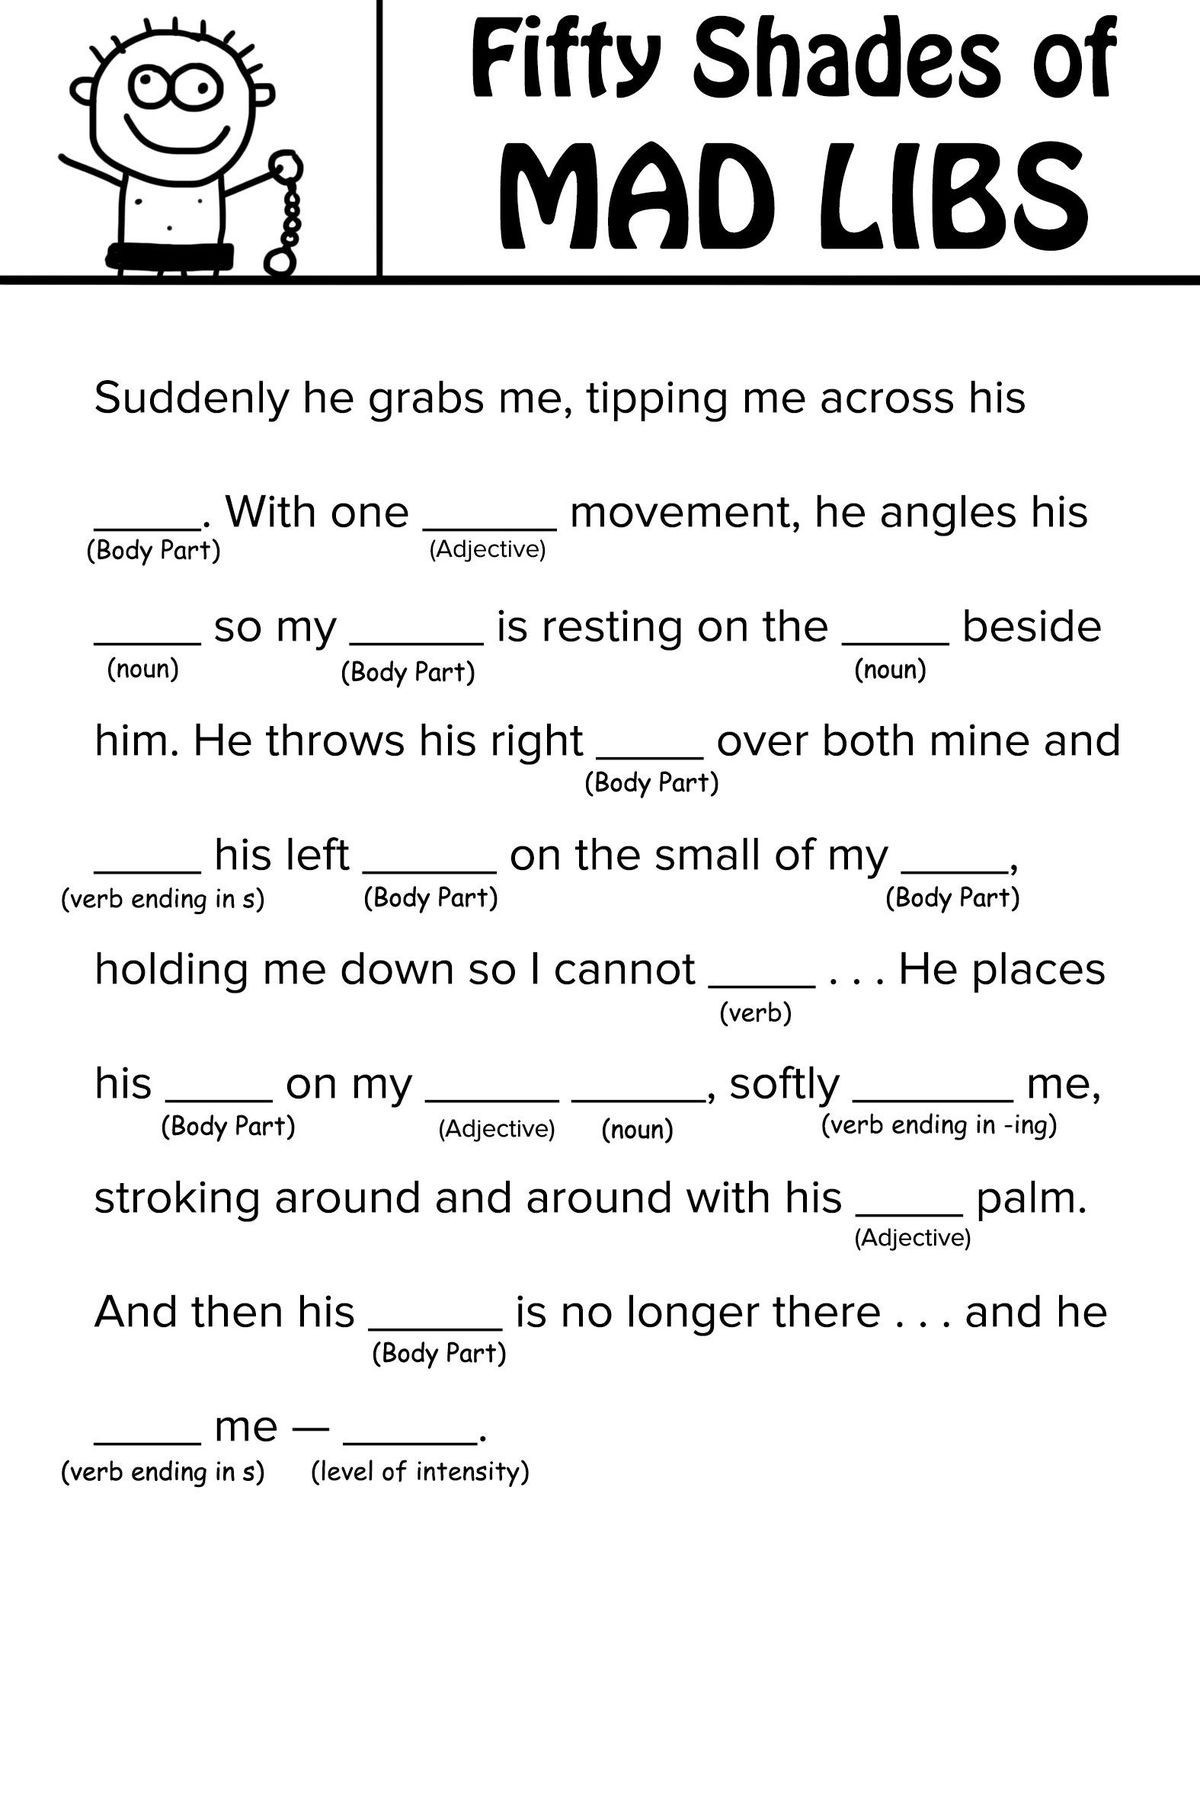 Free Printable Adjective Worksheets Mad Libs Adjective Worksheets Printable and Free for Kids